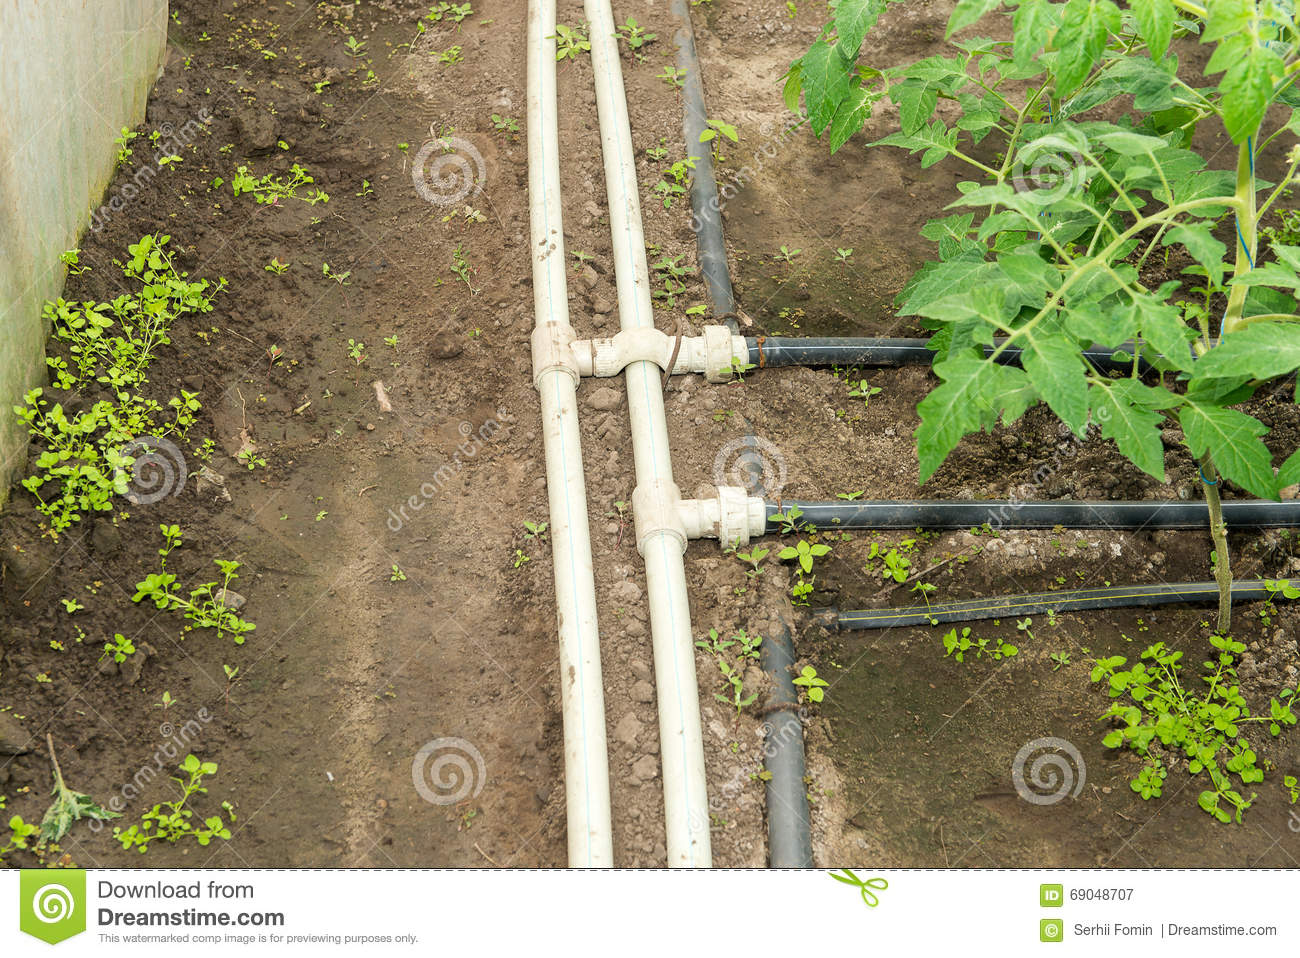 royaltyfree stock photo download seedling vegetable beds with drip irrigation system